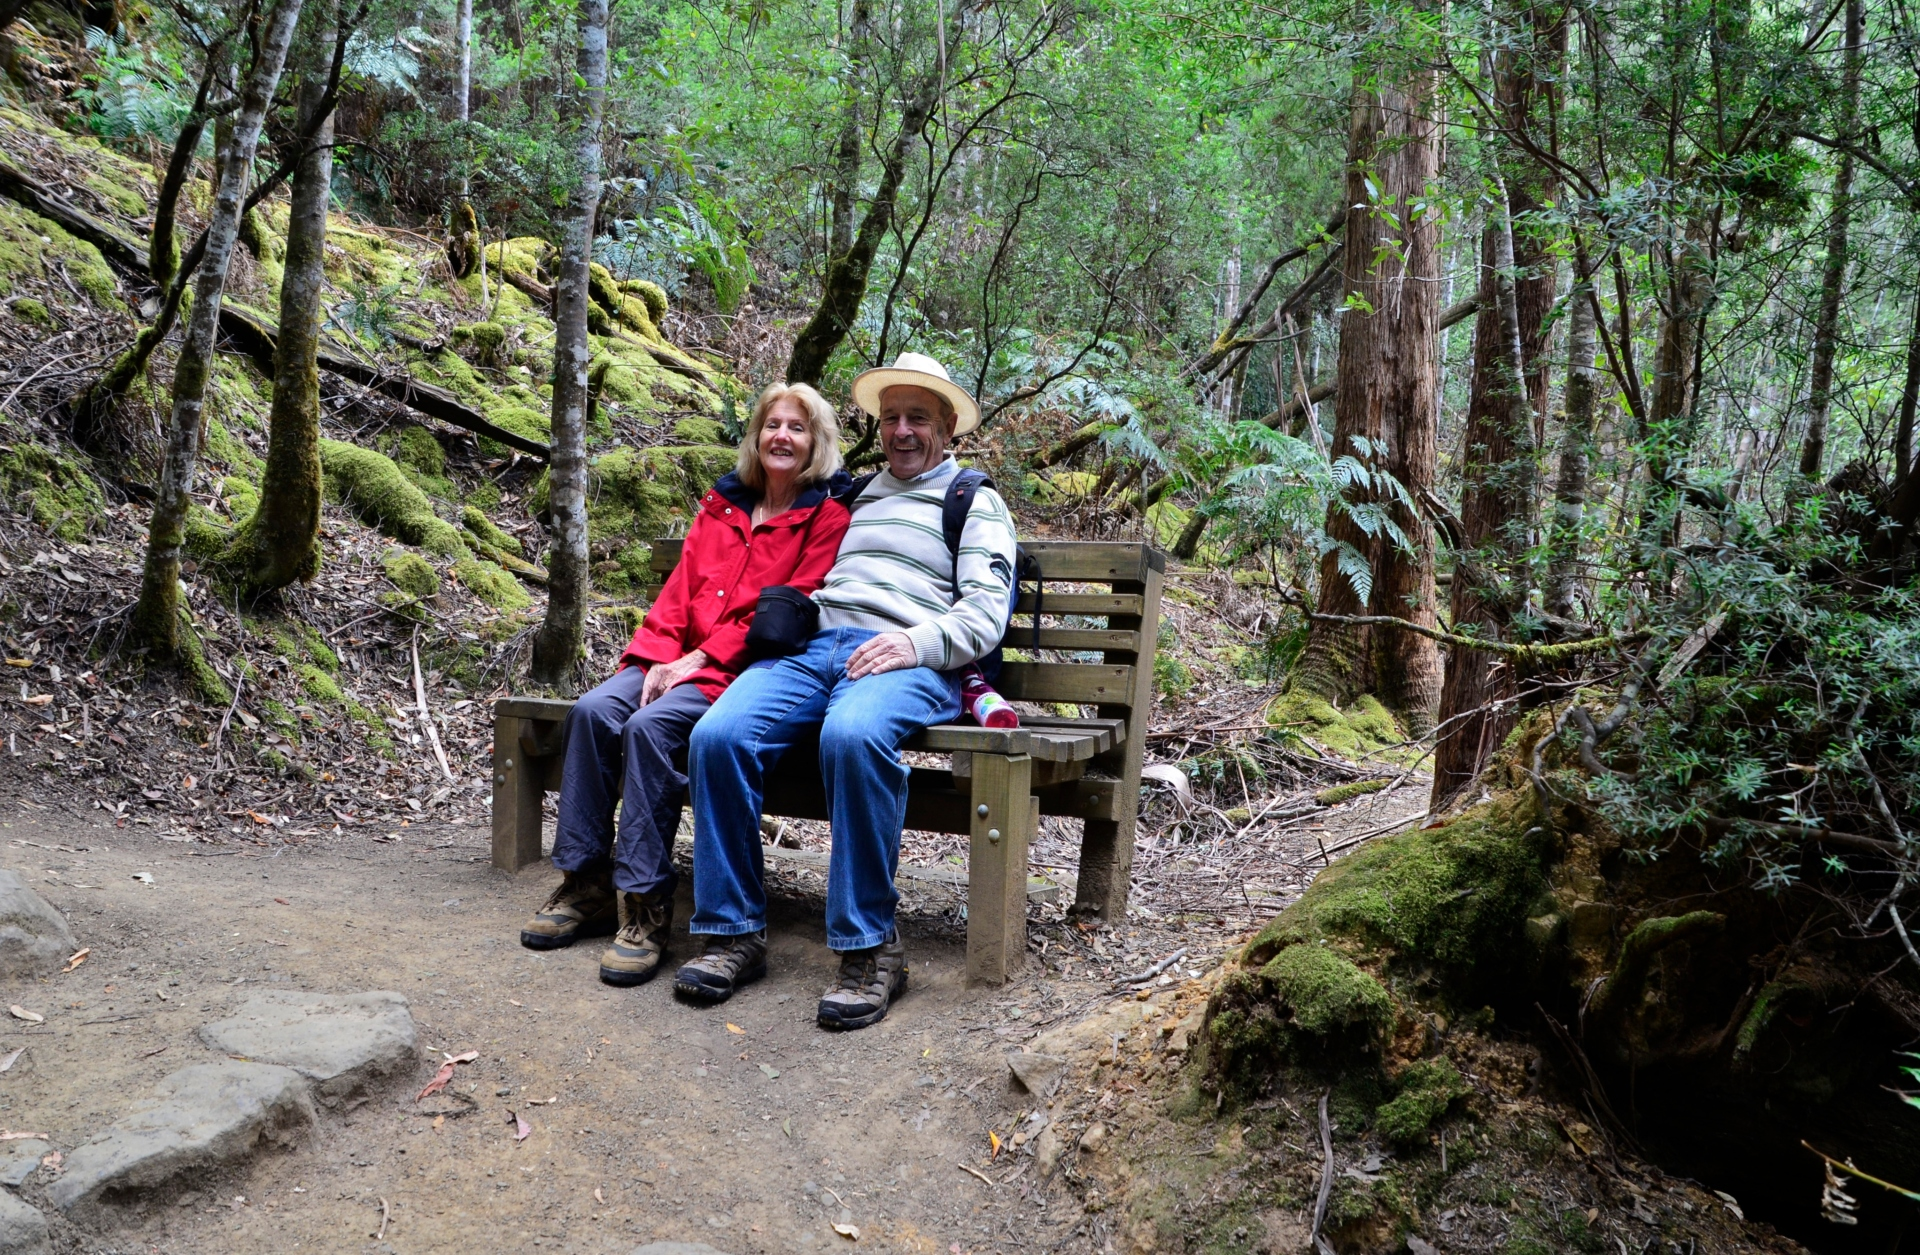 Ian and Lorraine taking a moment to catch their breath in Mount Field National Park, Tasmania. Source: Ian Smith